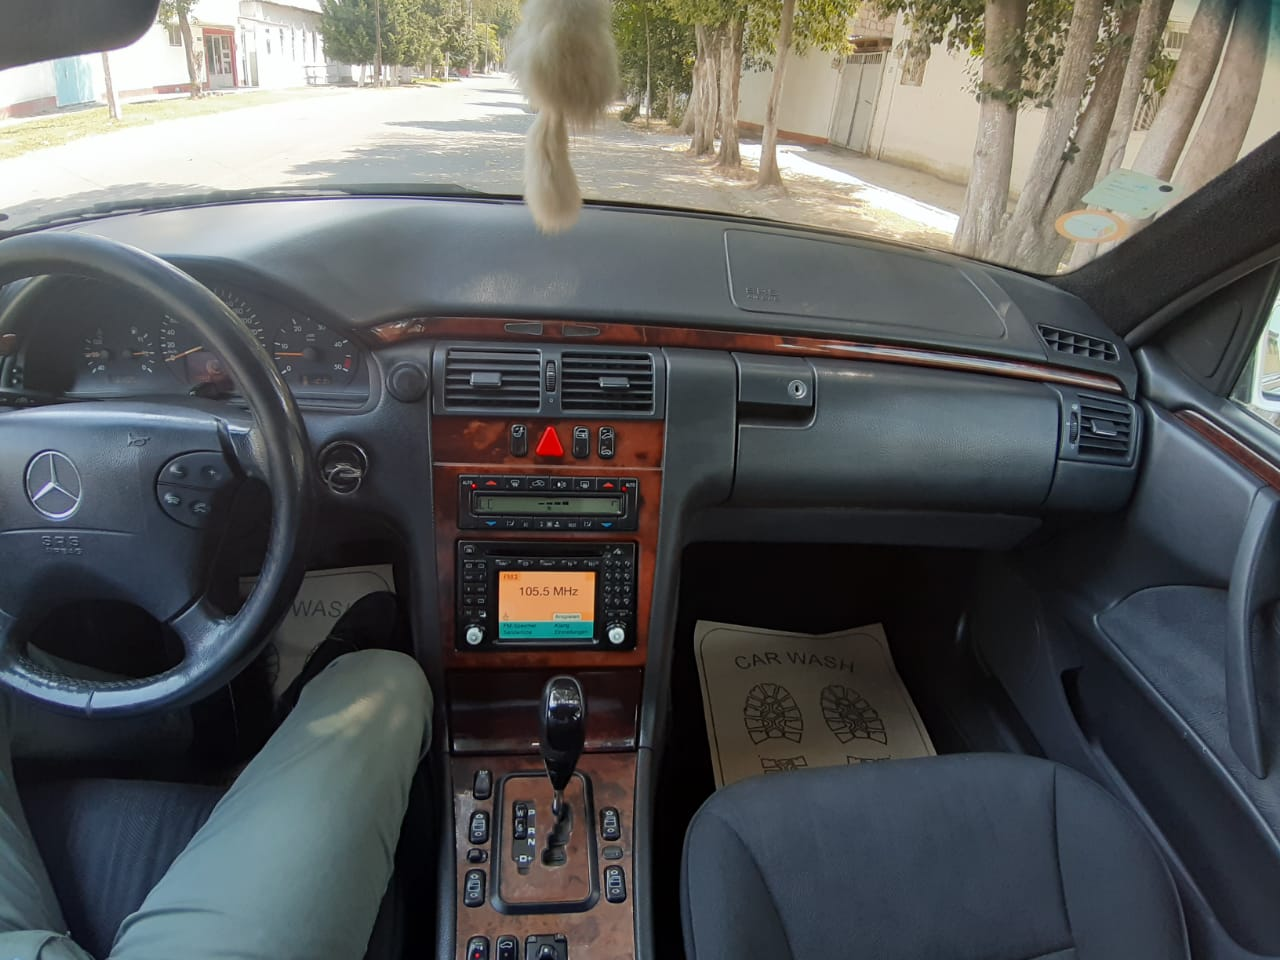 Mercedes-Benz E 220 2.2(lt) 2001 Second hand  $16000